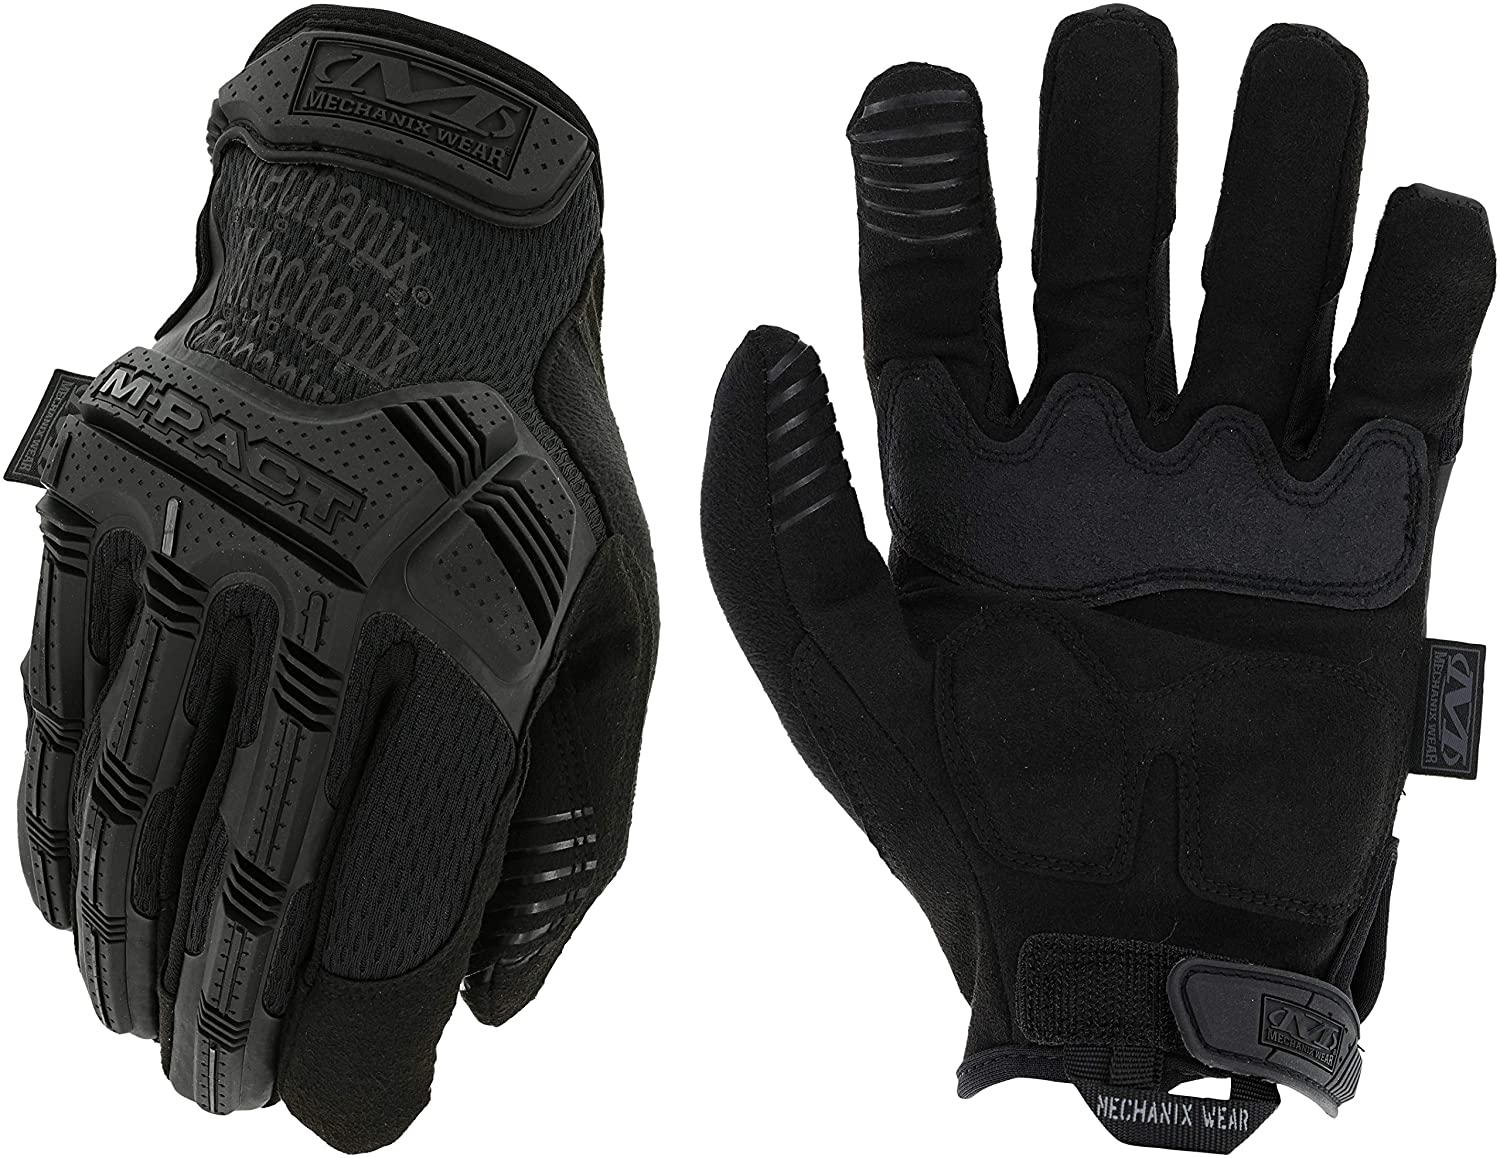 Mechanix Wear - M-Pact Covert Tactical Gloves (X-Large, Black)